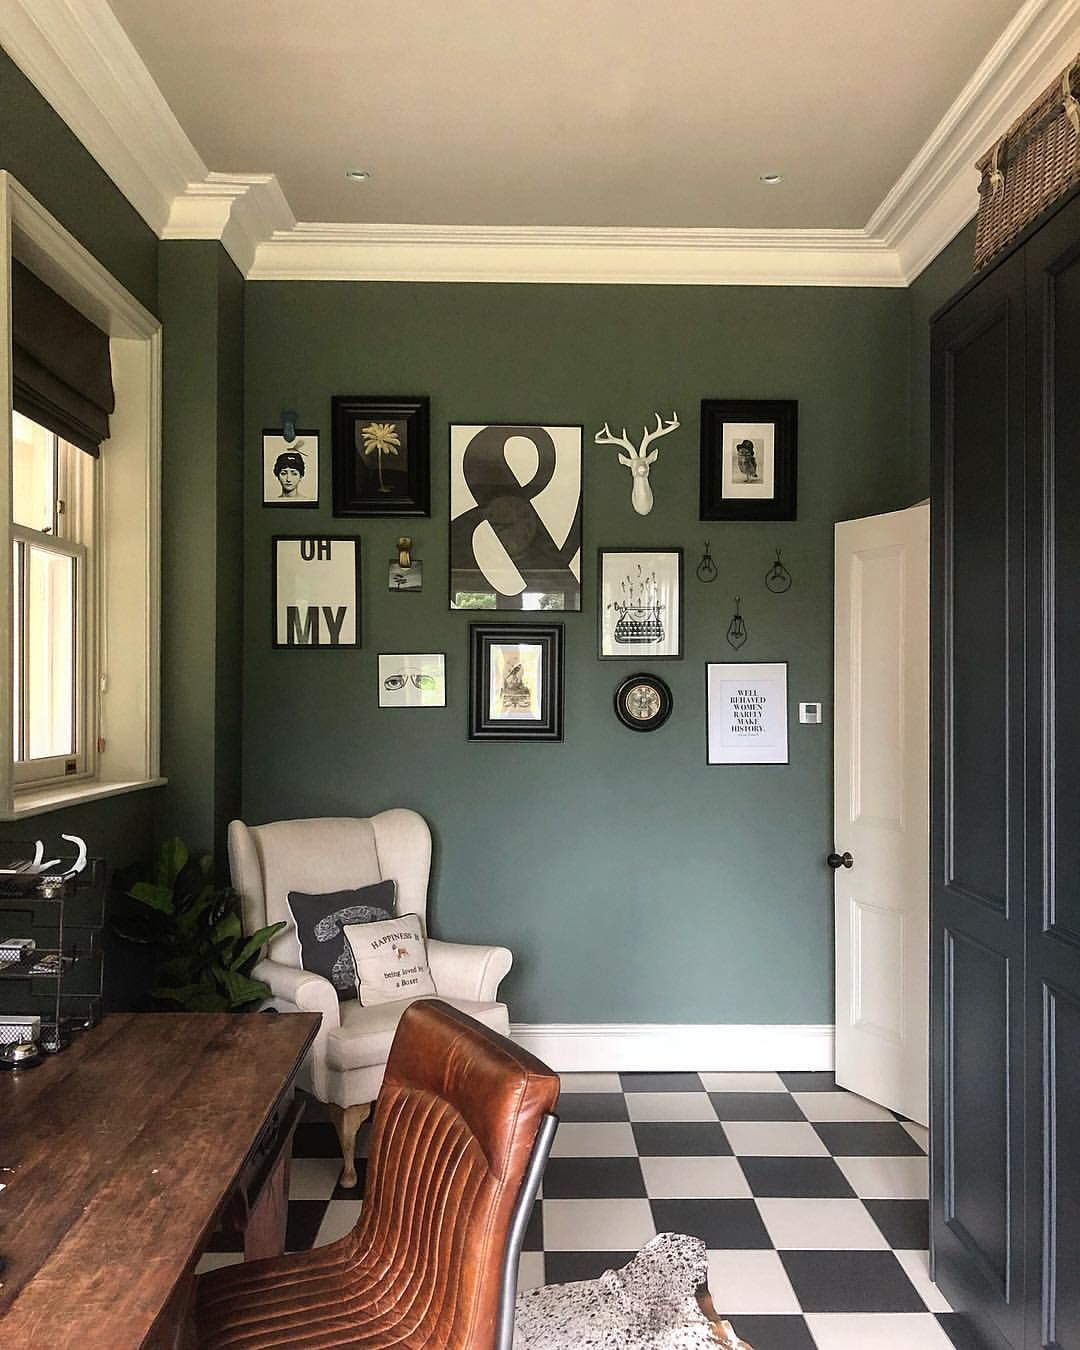 Feature Wall Idea For Dining Room Wall Gallery Wall Di